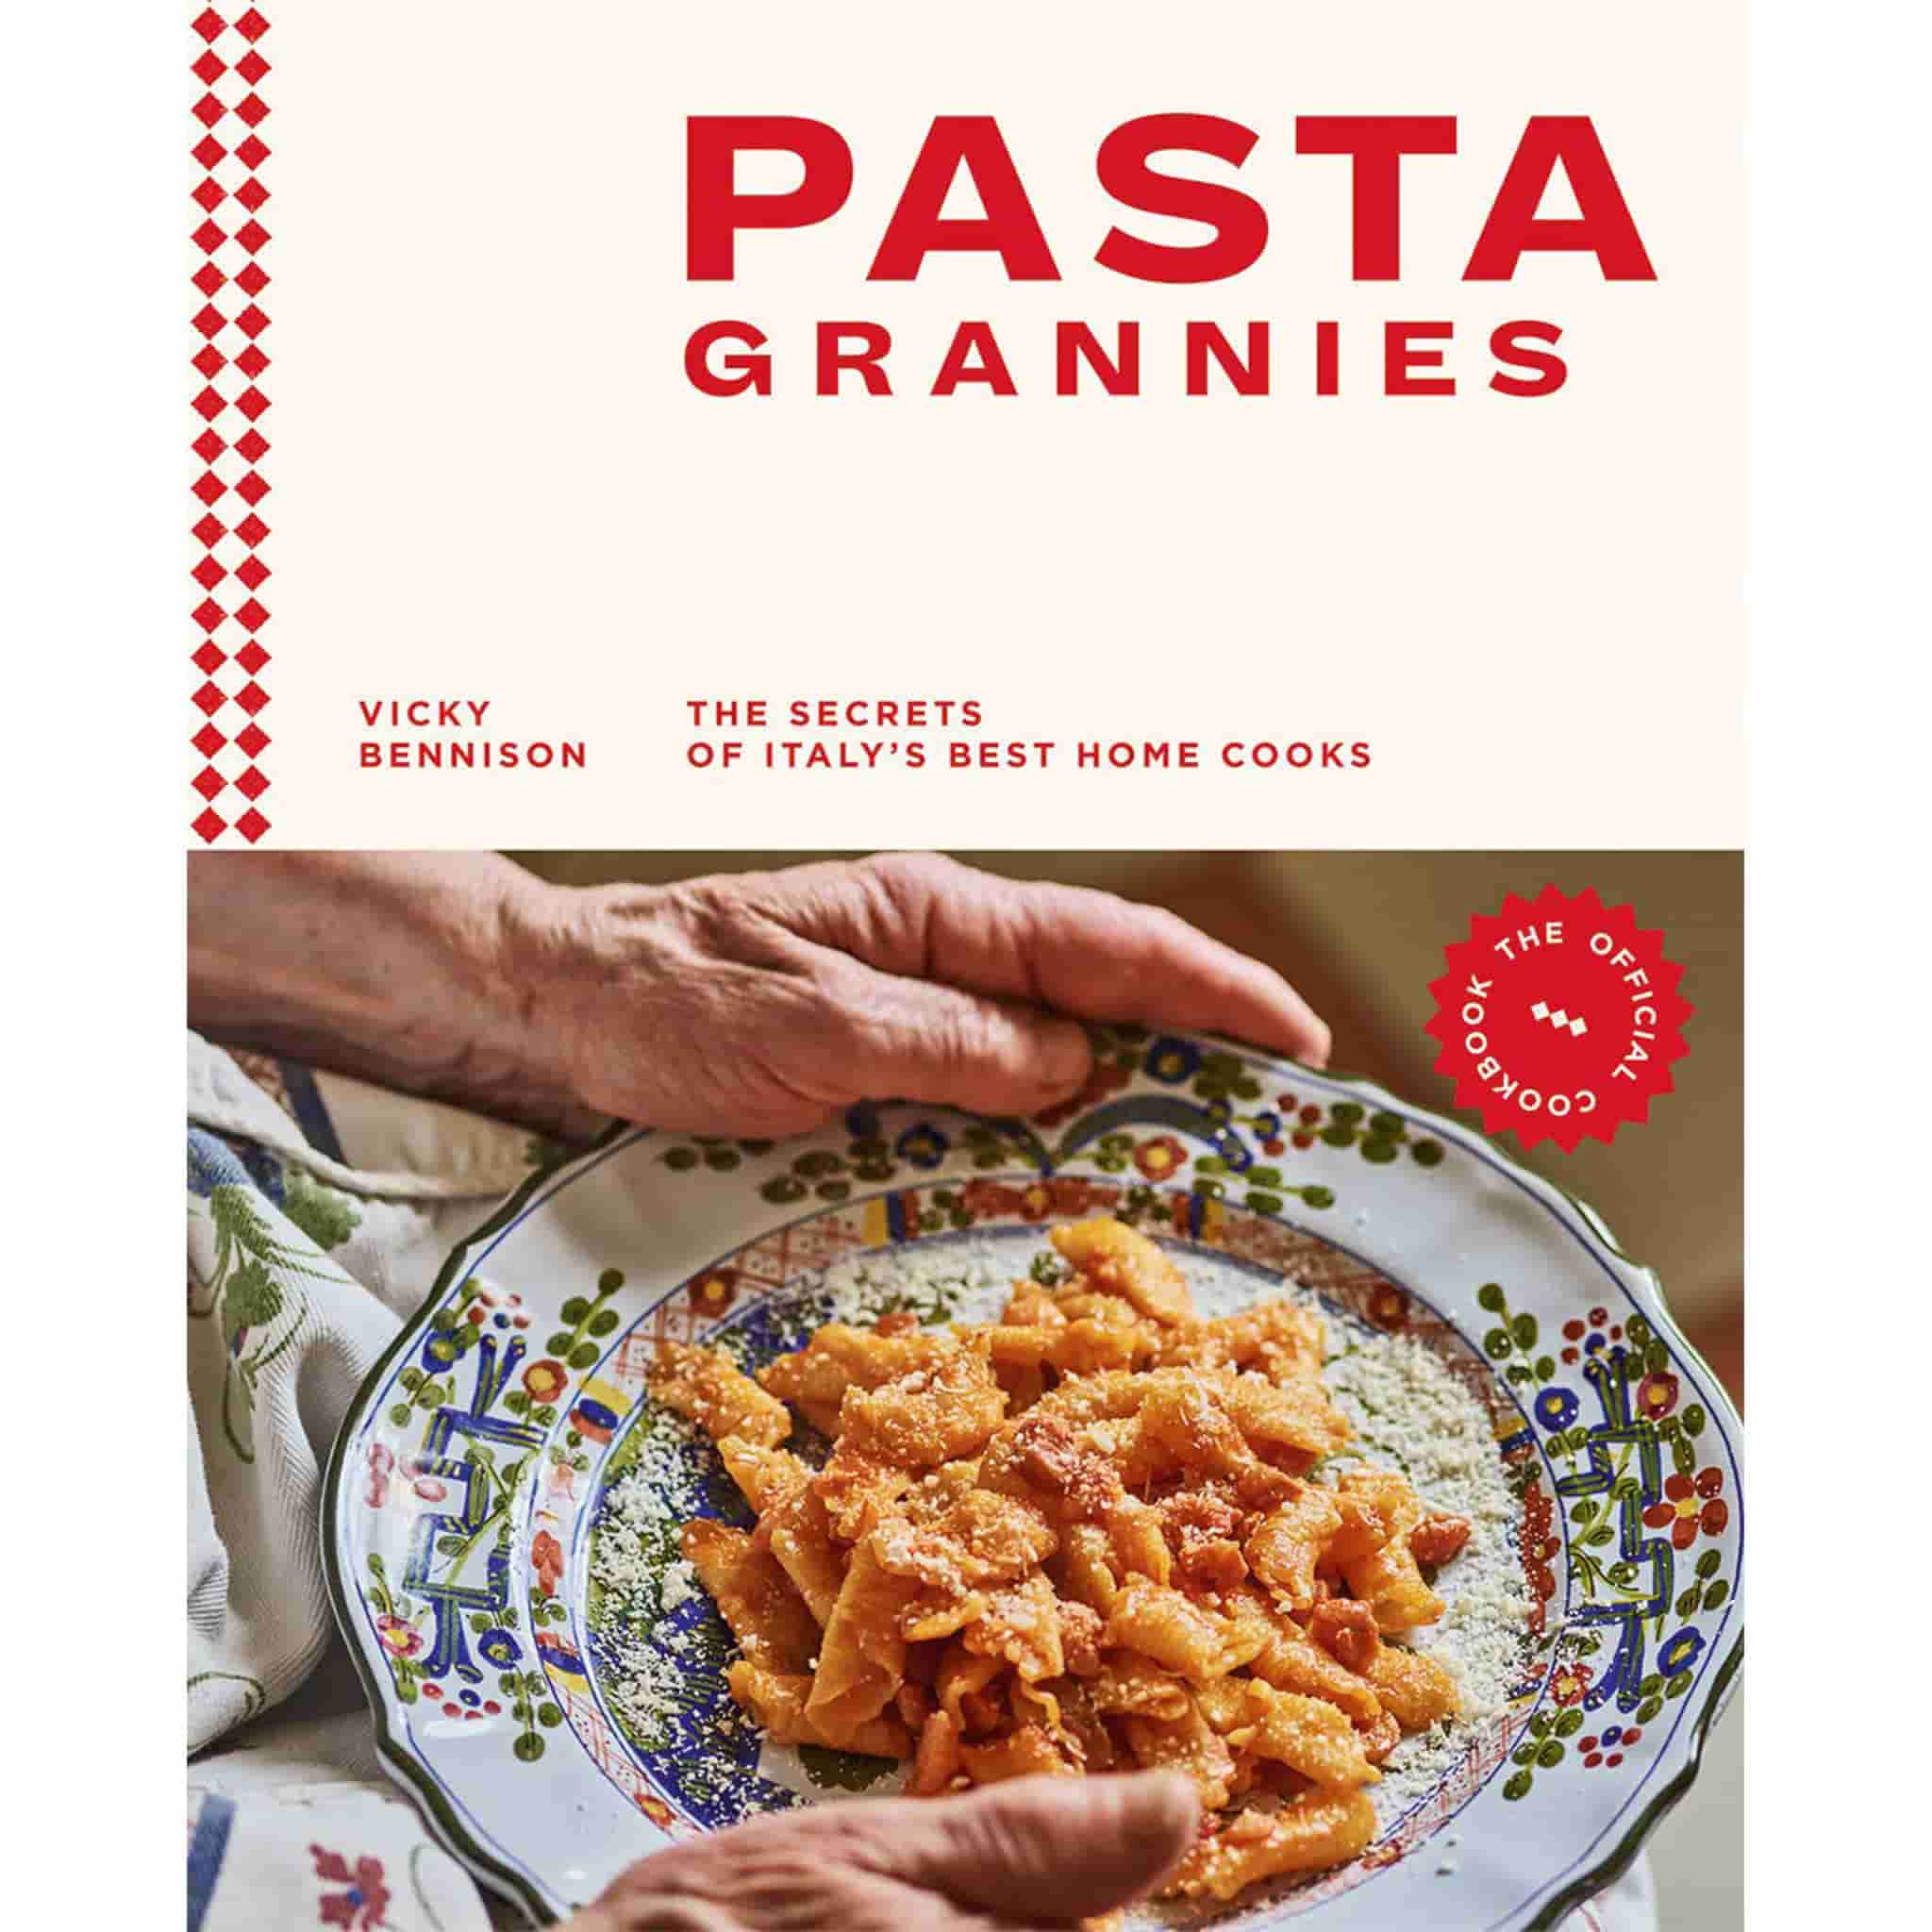 Pasta Grannies: The Secrets of Italy's Best Home Cooks